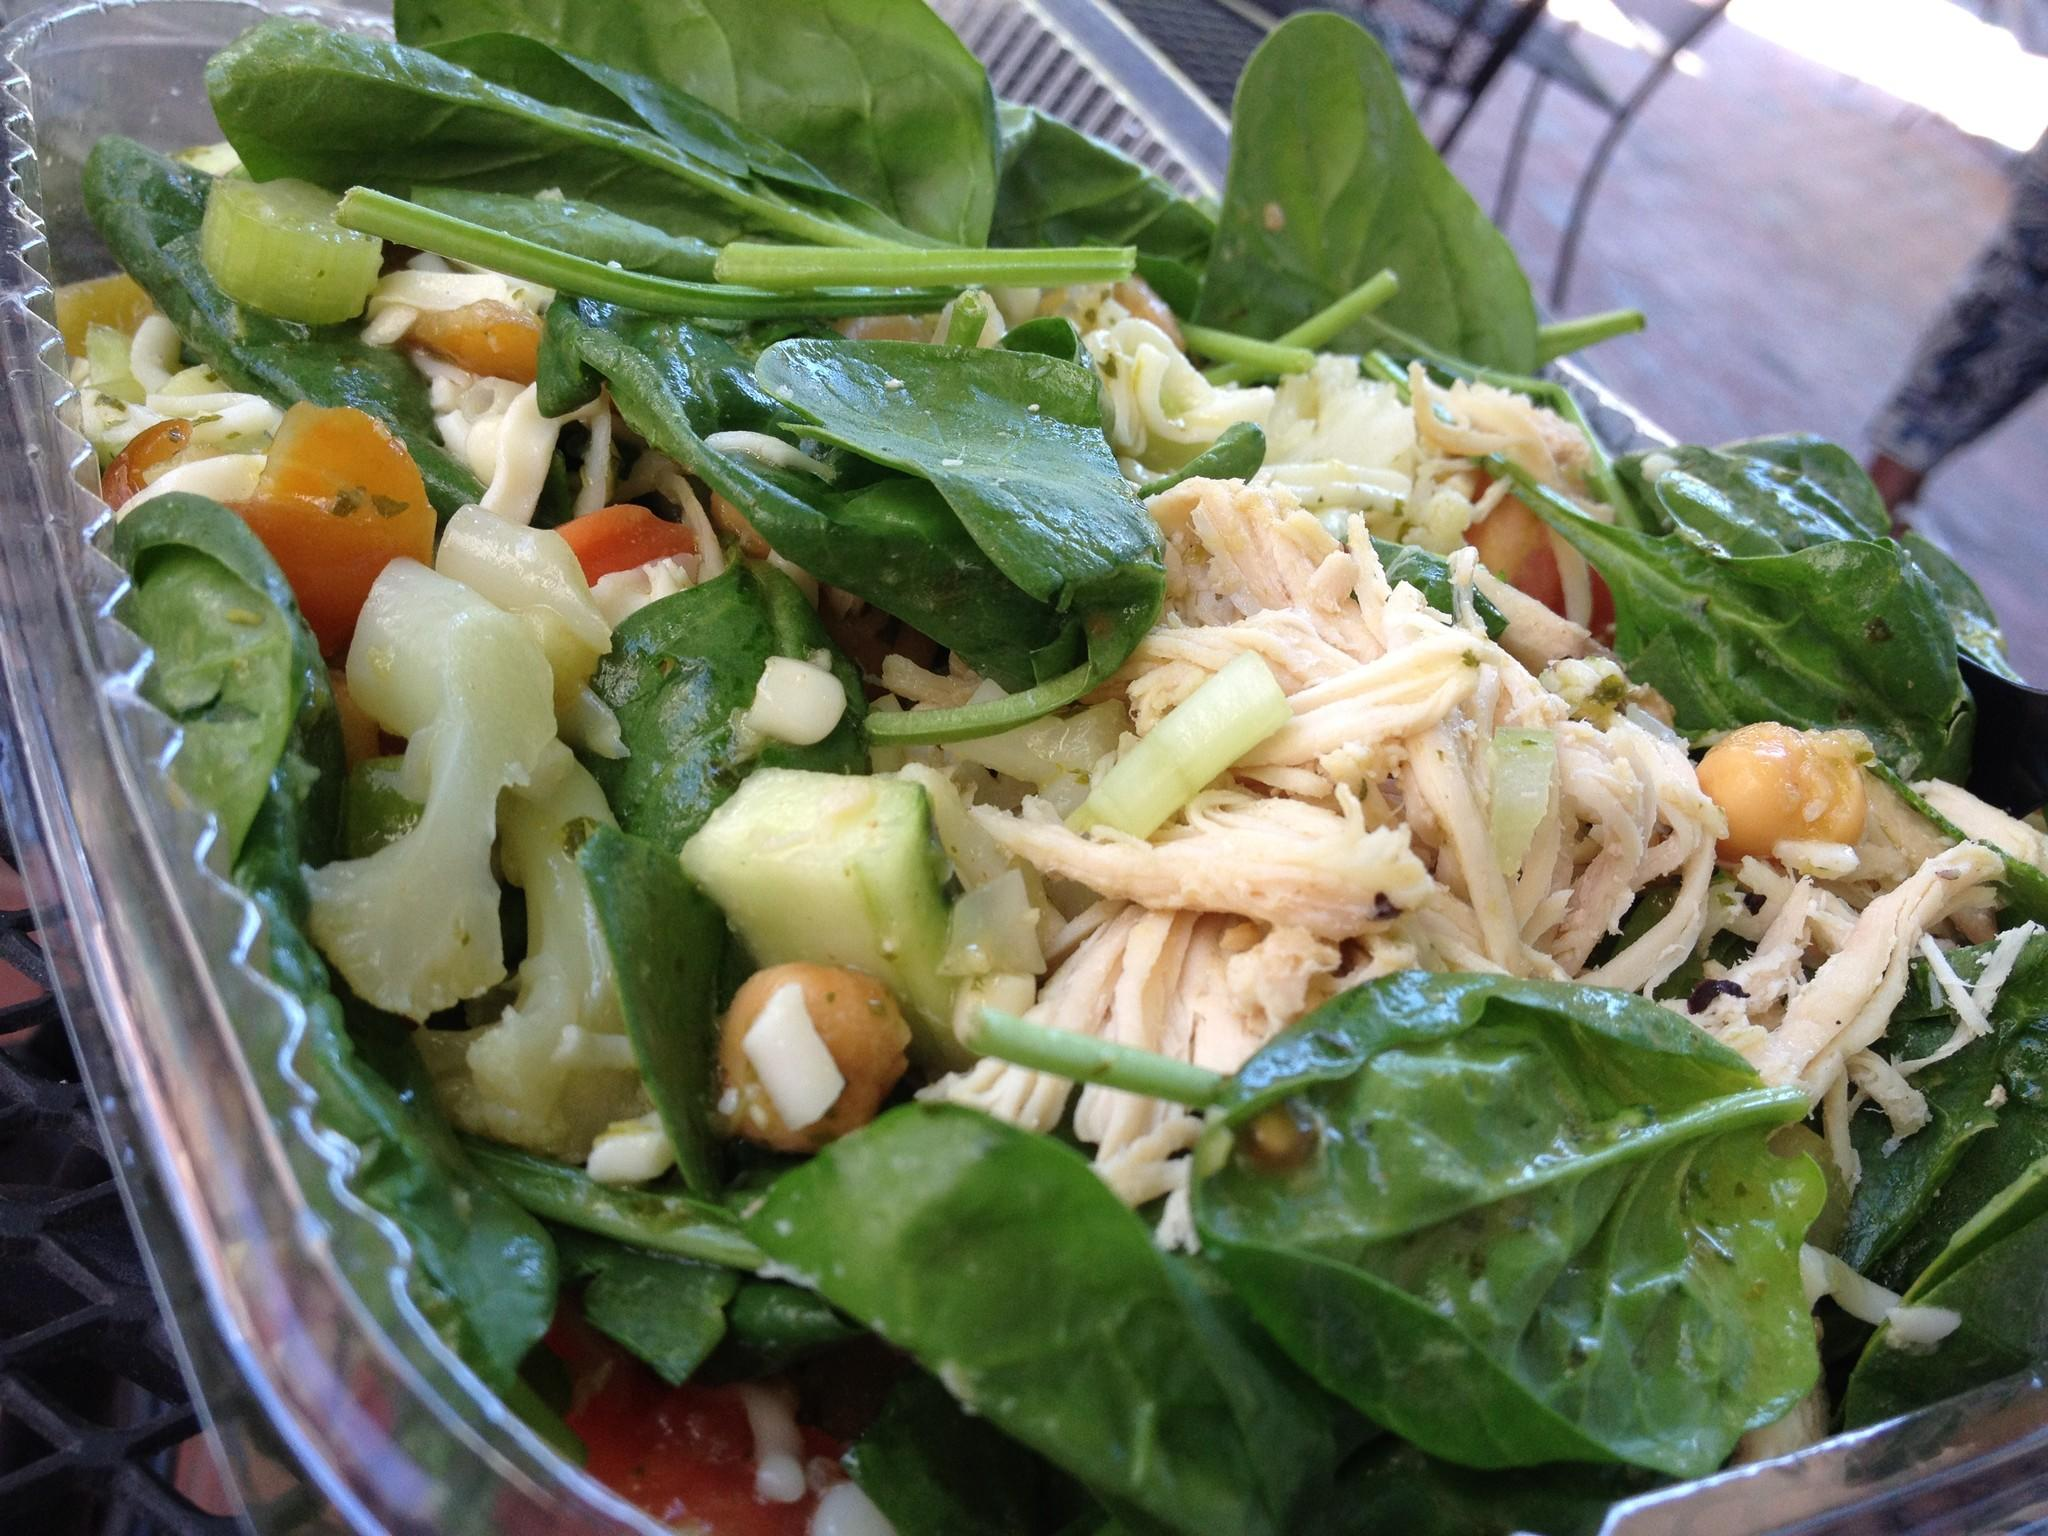 A salad with with pulled chicken and vegetables at Nalley Fresh, a make-it-yourself cafe on the corner of Calvert and Baltimore streets.